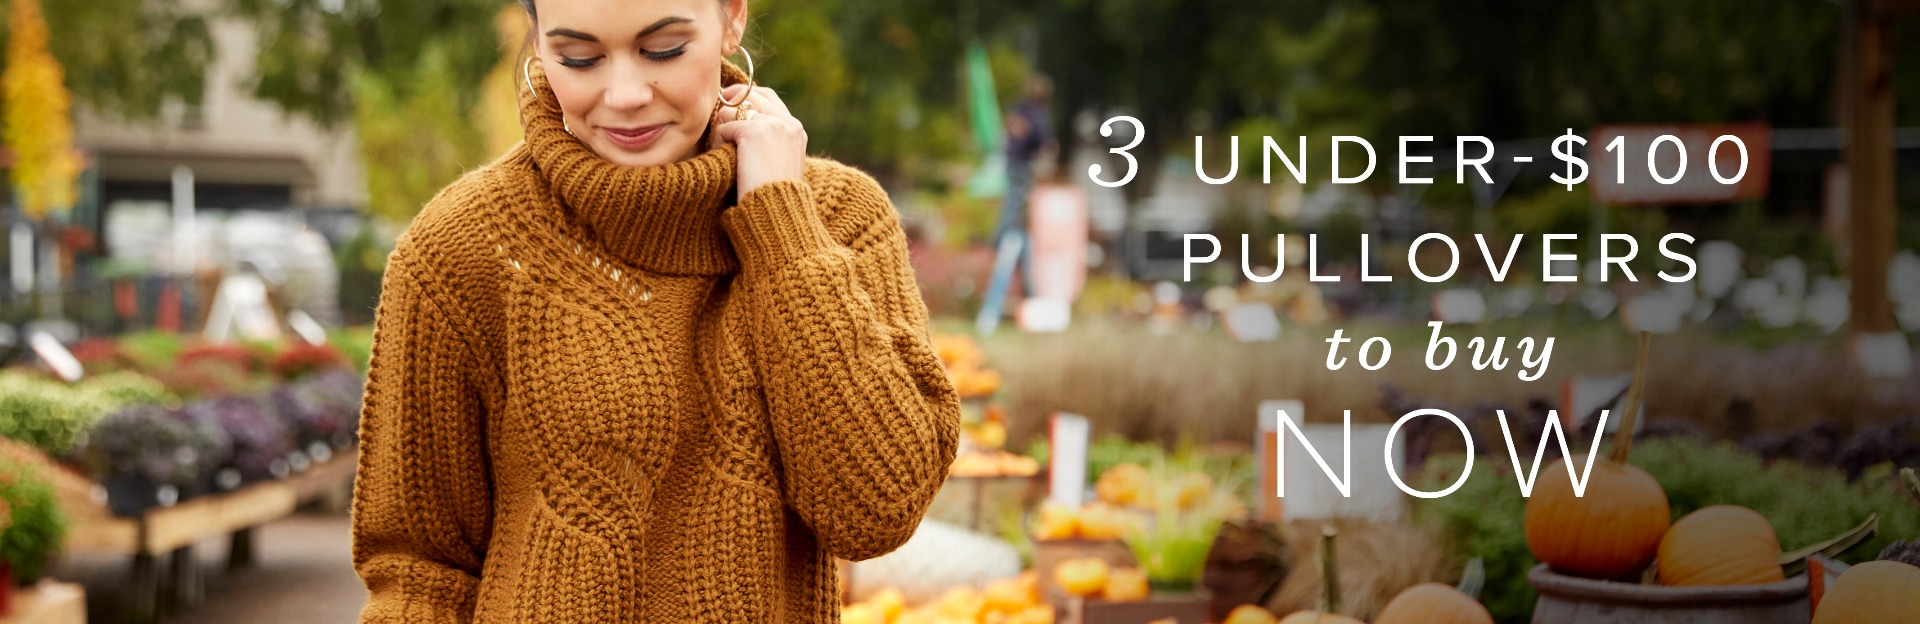 3 pullovers to buy now